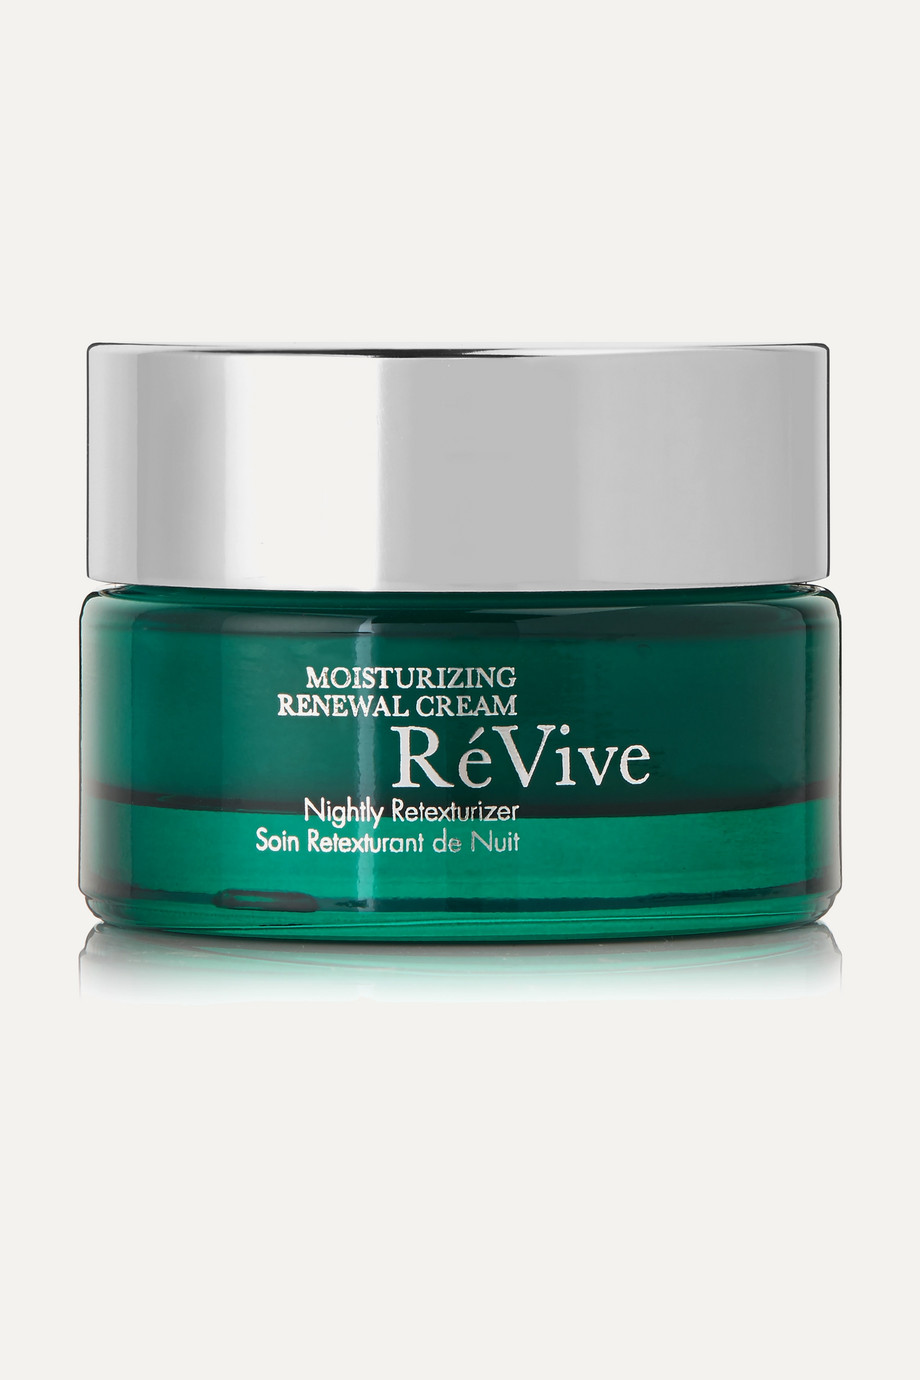 RéVive Moisturizing Renewal Cream, 15 ml – Nachtcreme